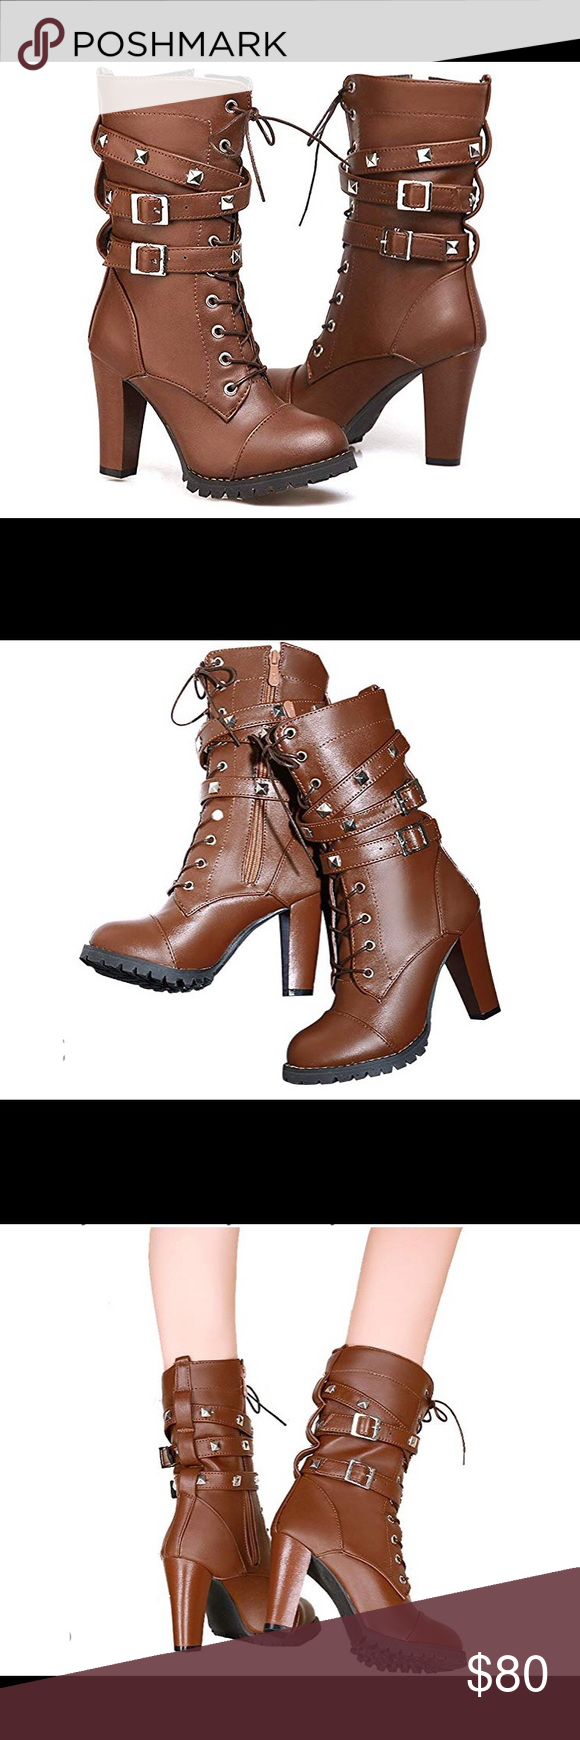 0831 Women's Mid Calf Leather Boots High Heel Lace Women's Mid Calf Leather Boots High Heel Lace Up Military Buckle Motorcycle Cowboy Ankle Booties About this item  leather-and-rubber Manmade Antiskid and Durable Soft Leather High Quality,Fashionable & Comfortable high heels / mid-calf / round-toe Heel Height:3.5